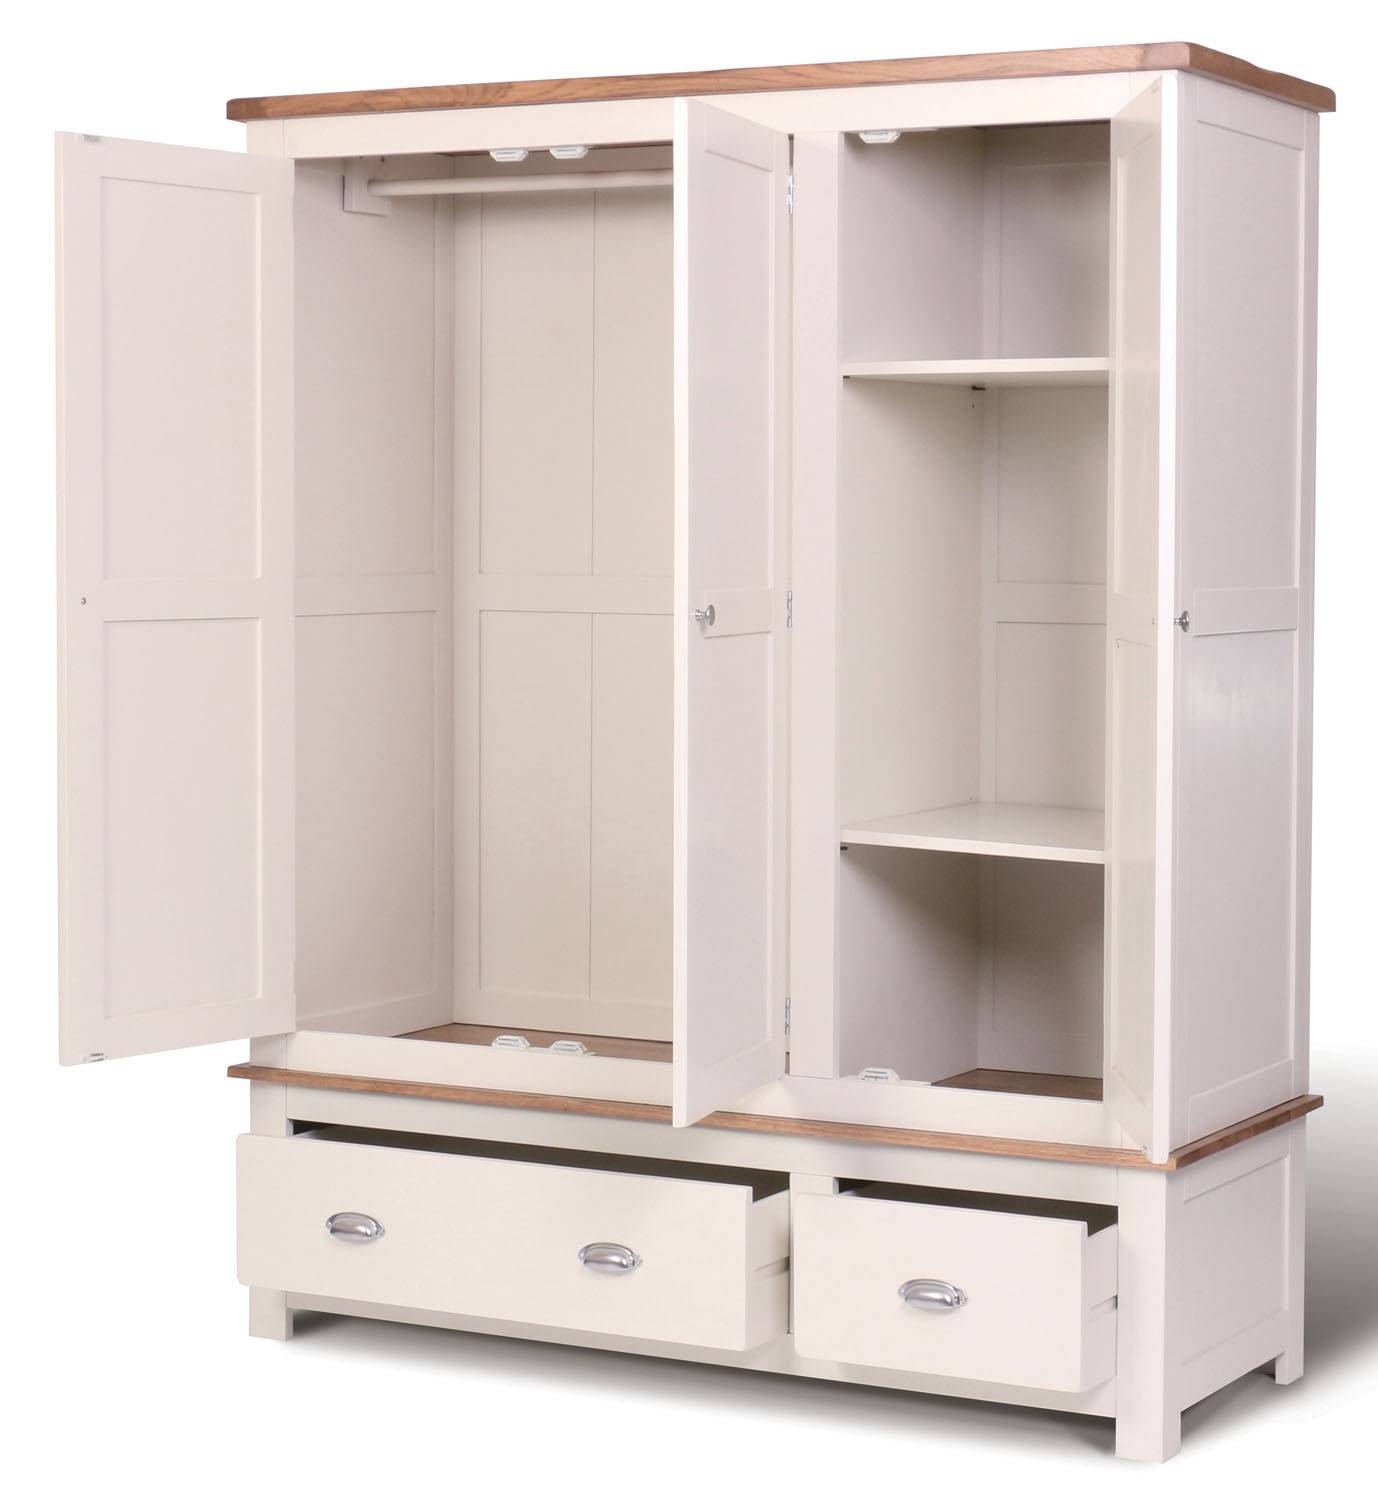 Ascot Triple Wardrobe With Drawers - Wardrobes - Bedroom | Hallowood within Wardrobe With Drawers and Shelves (Image 4 of 30)